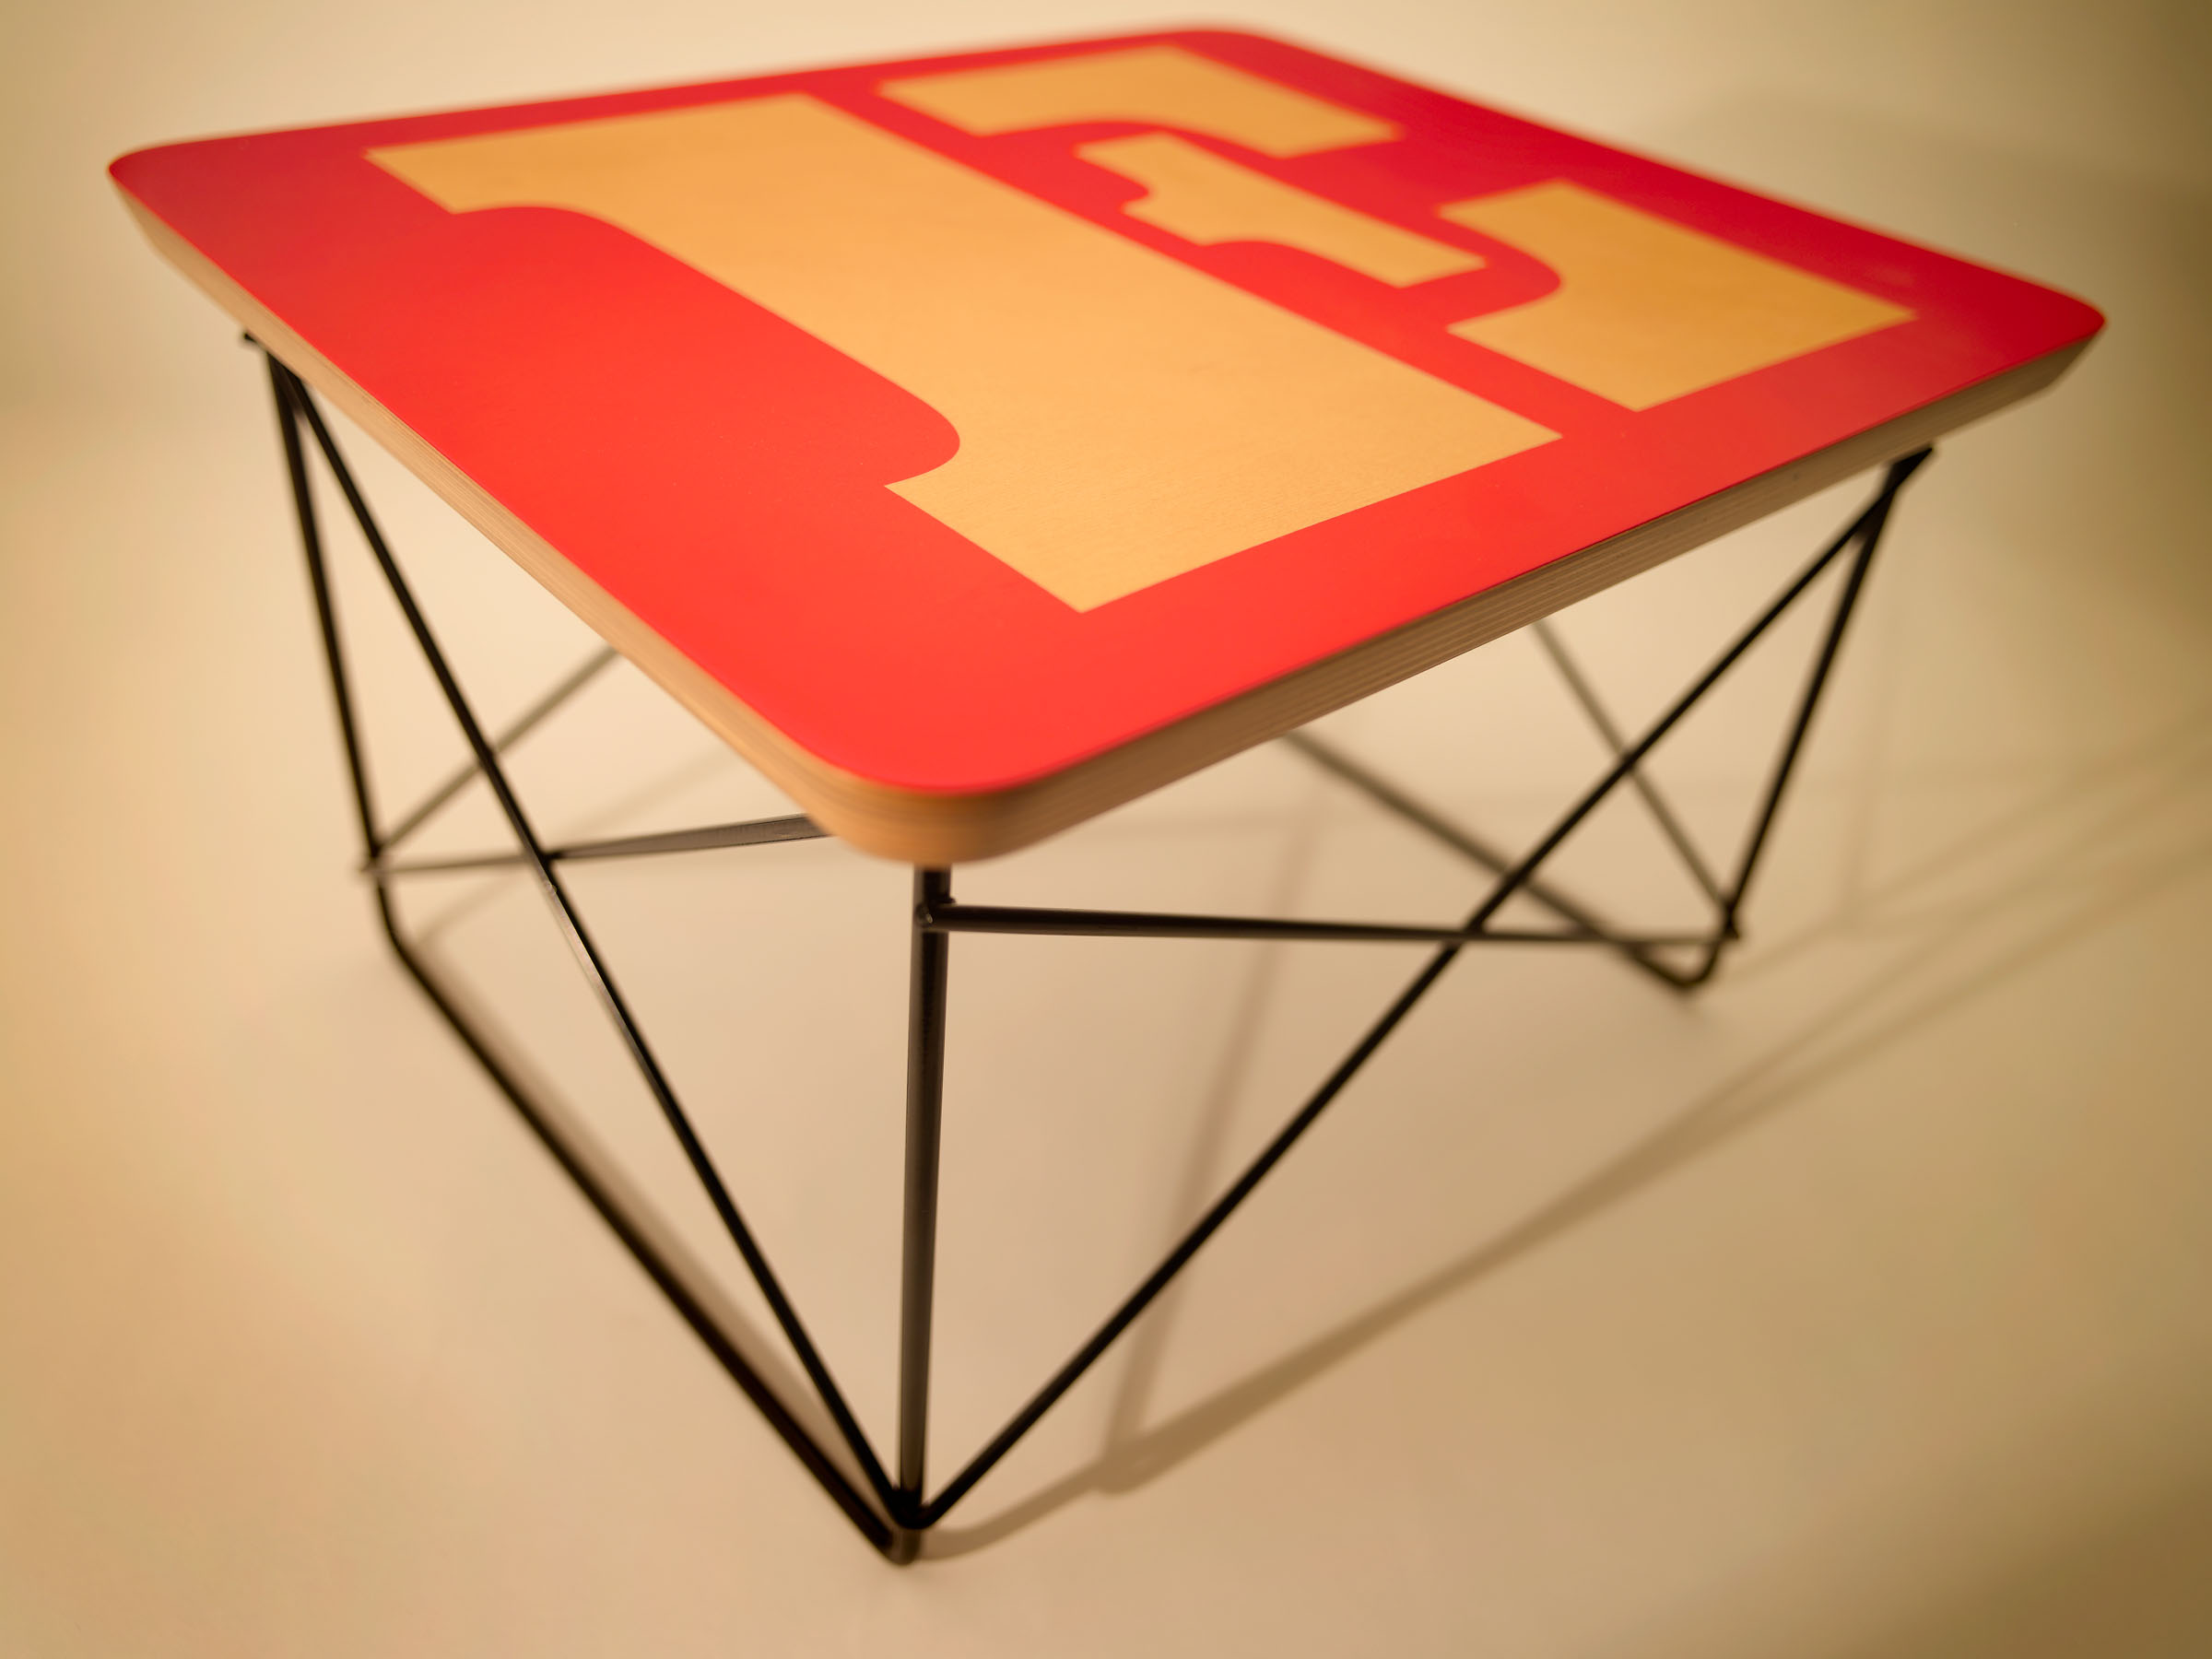 House Industries for Herman Miller: Eames Tables: house_industries_and_herman_miller_3_20110916_1754628636.jpg